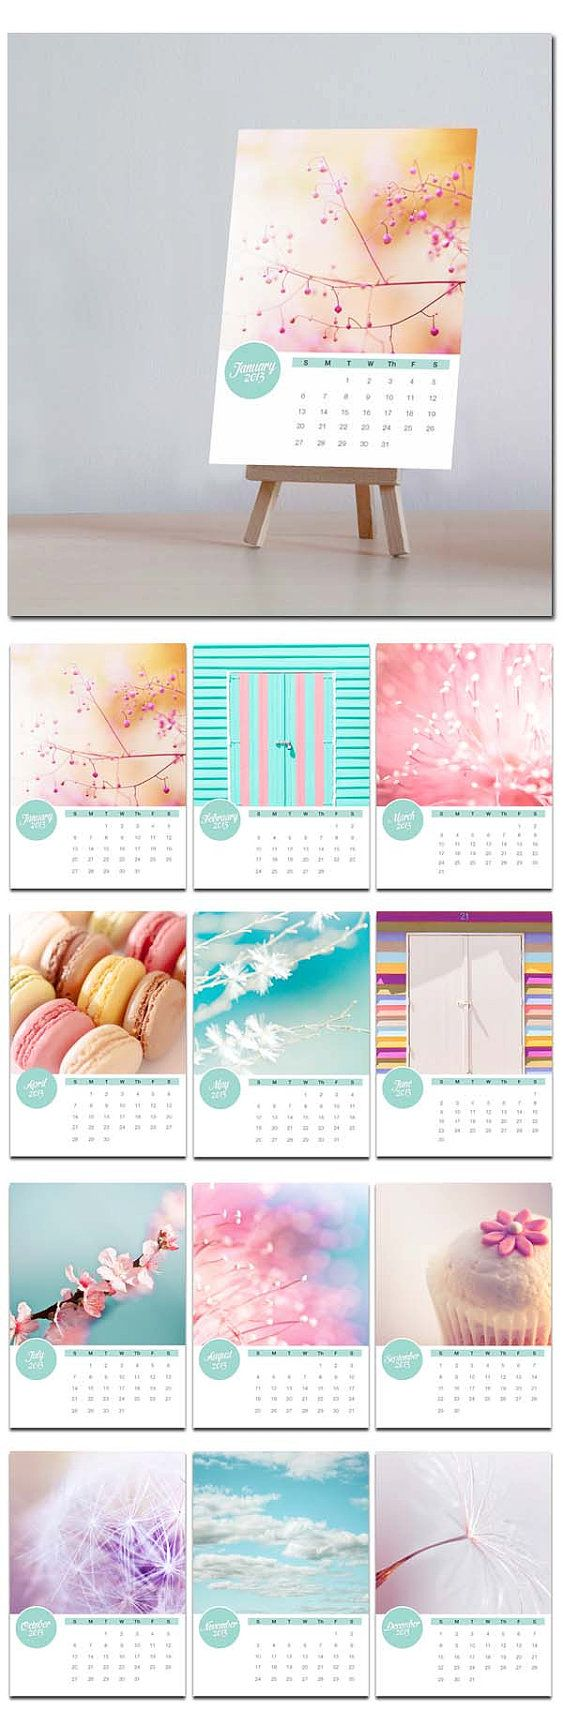 2013 photo calendar  pastels 5x7 mini desk calendar with macarons by mylittlepixels